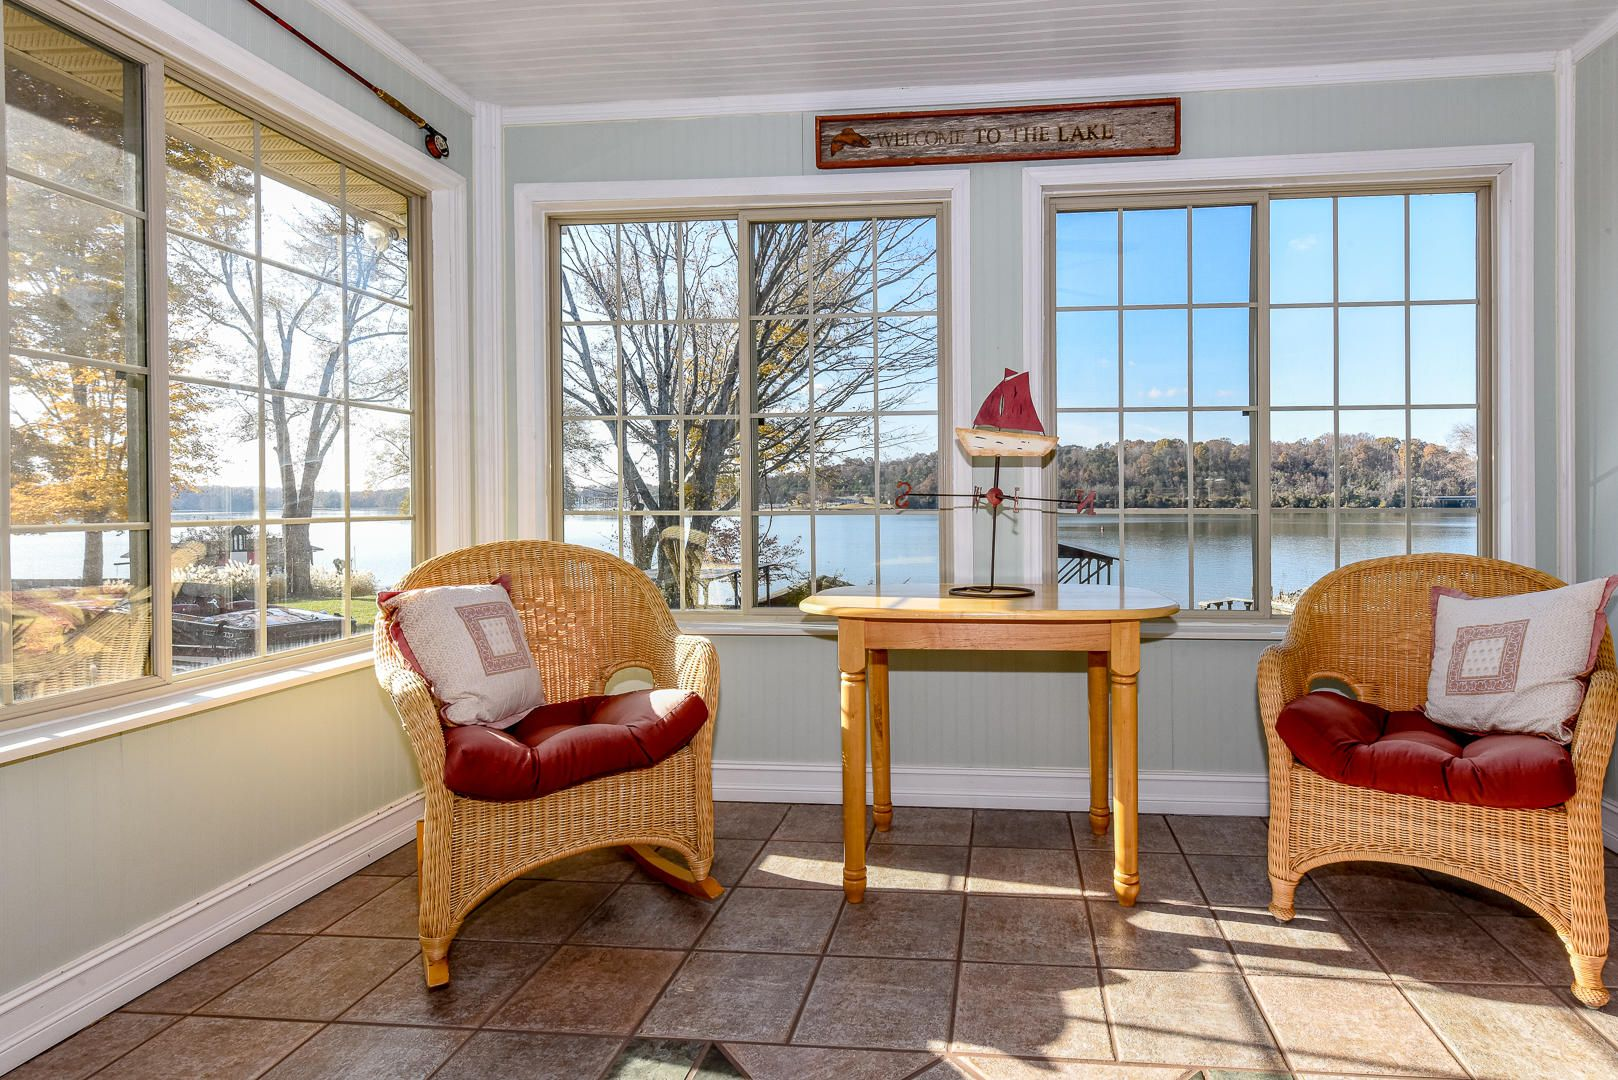 Relax and enjoy views from the sunroom